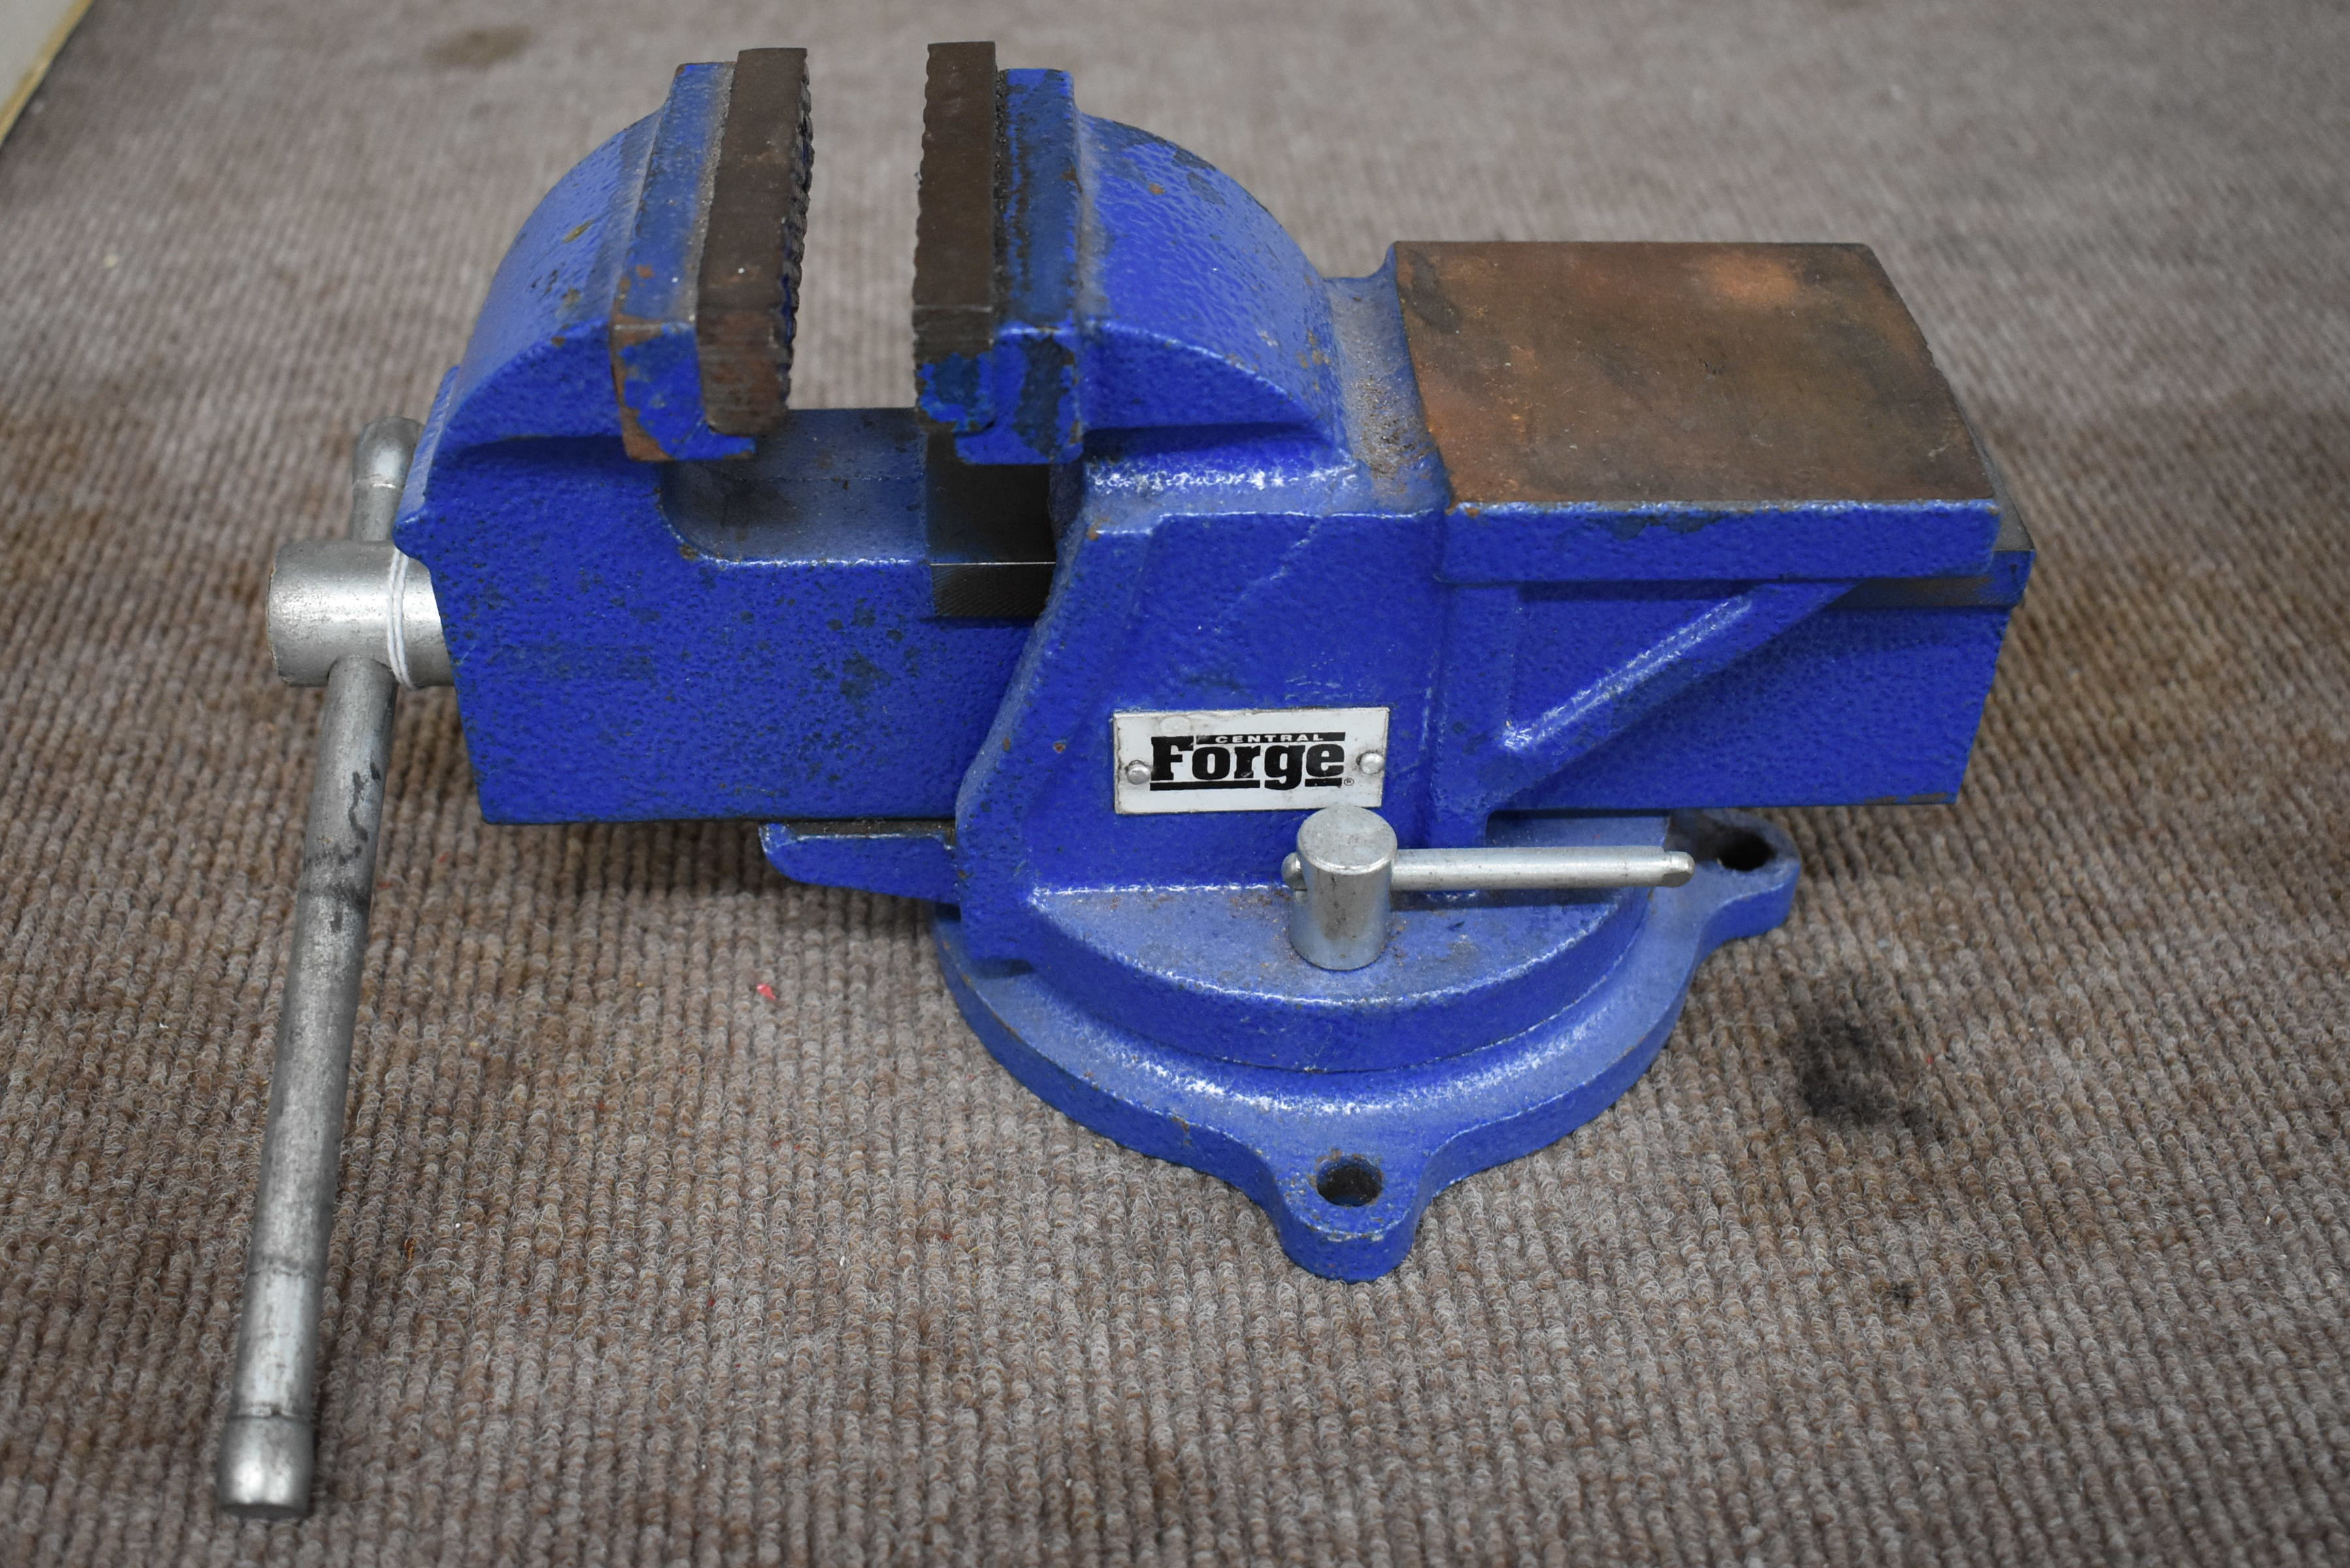 CENTRAL FORGE -  - VICE TOOLS-HAND